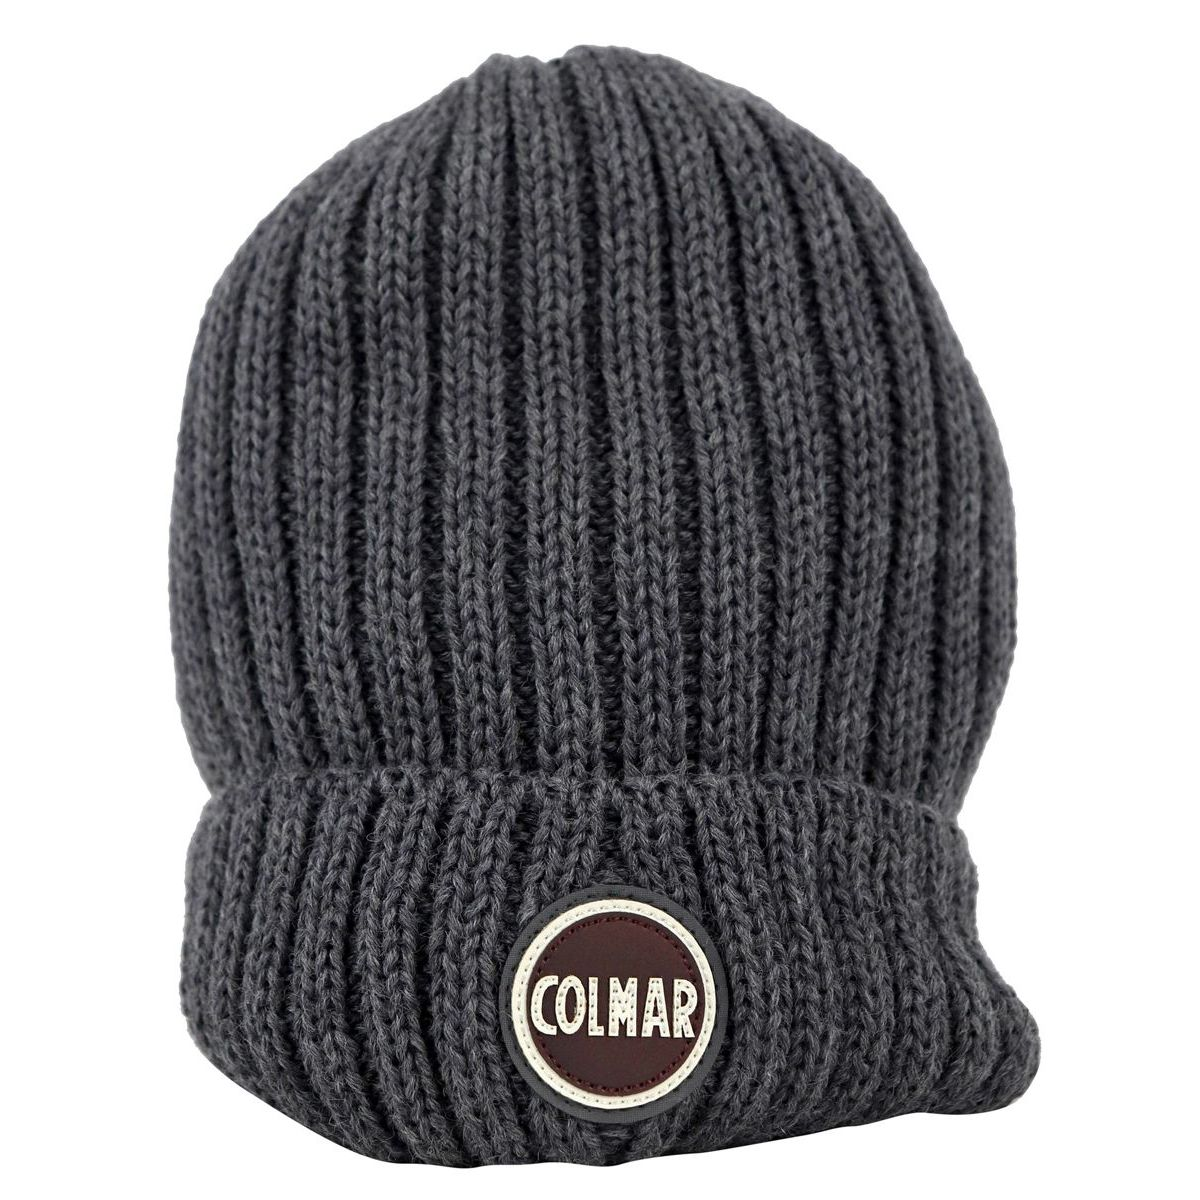 Ribbed wool blend hat with turn-up and logo Grey Colmar